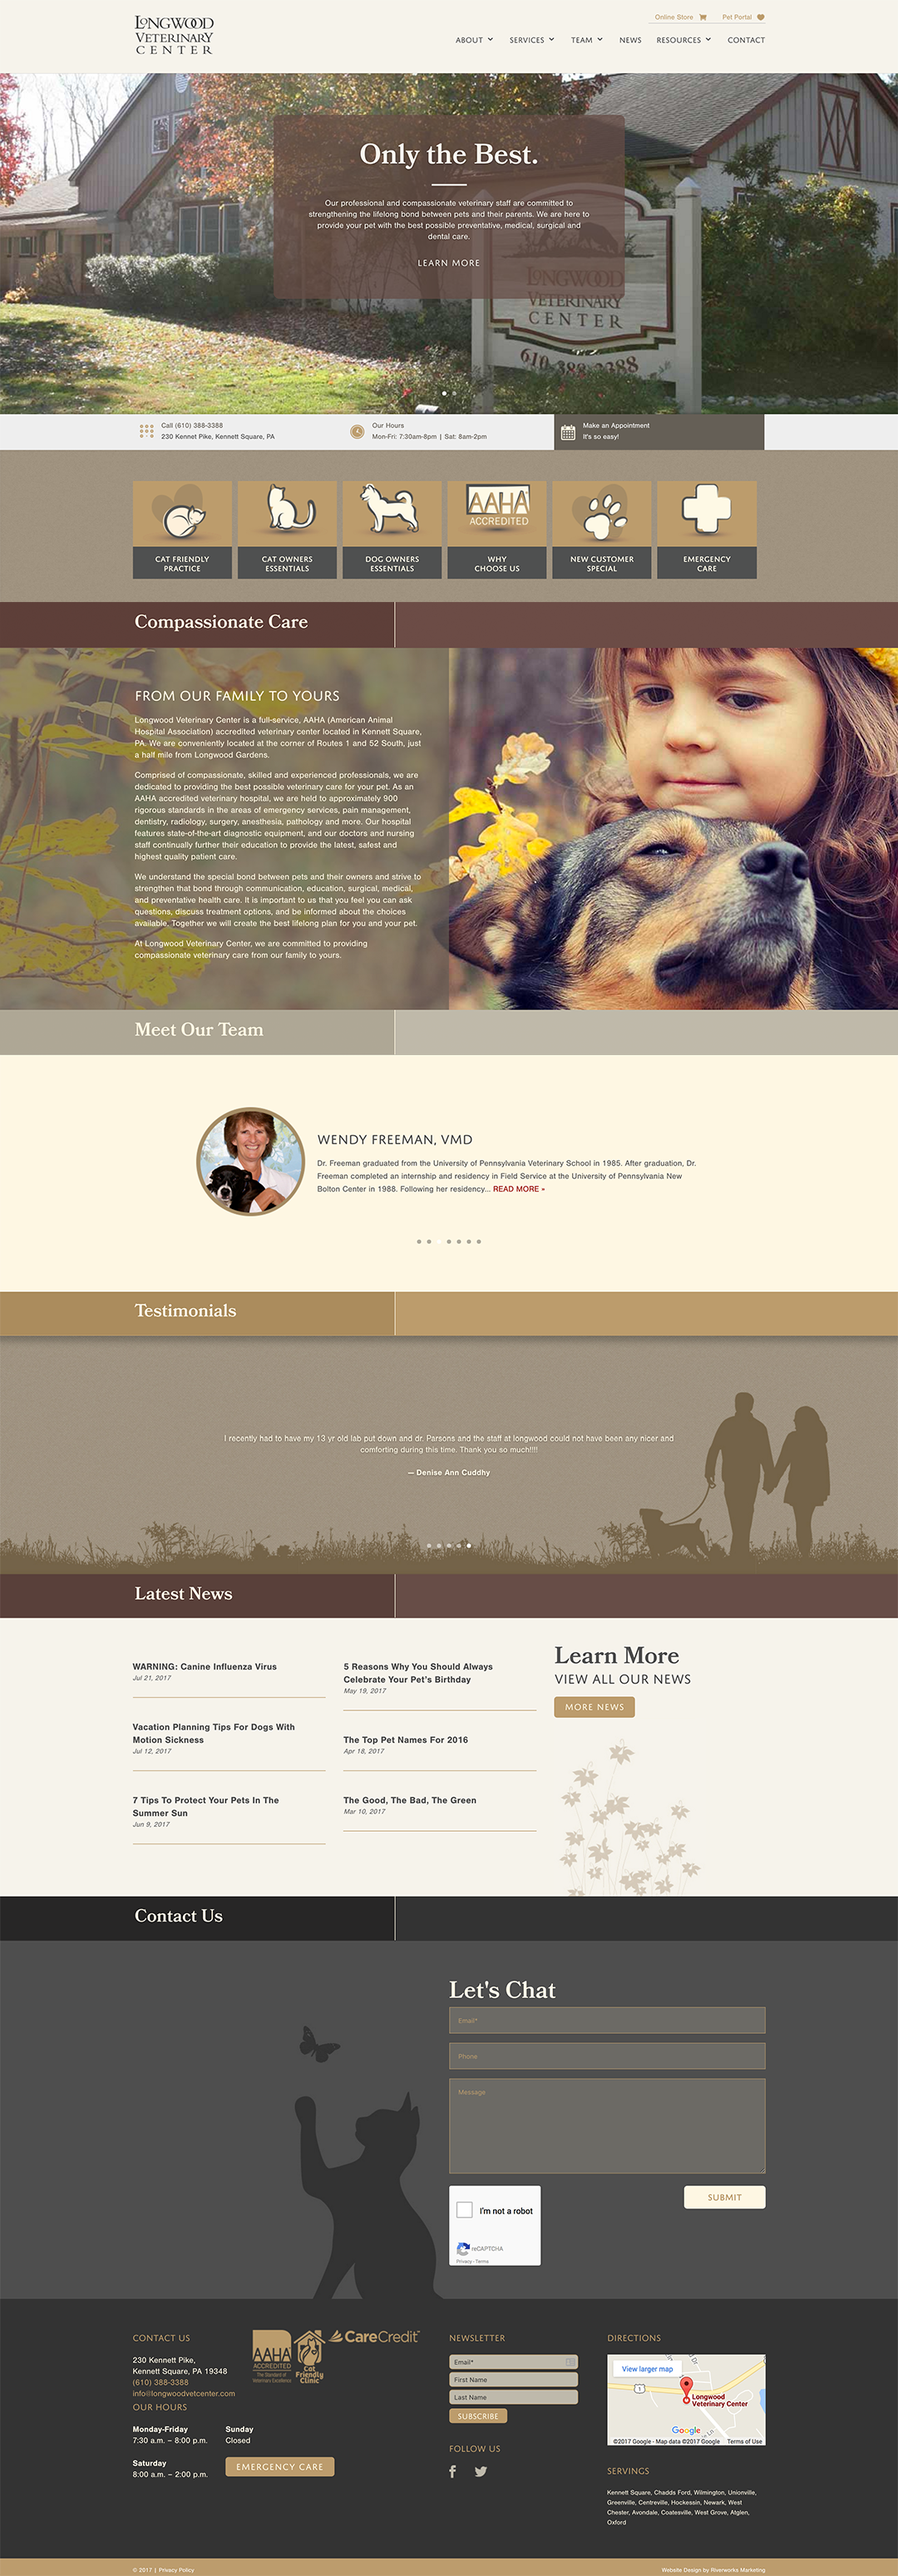 Longwood Veterinary Center Website Design